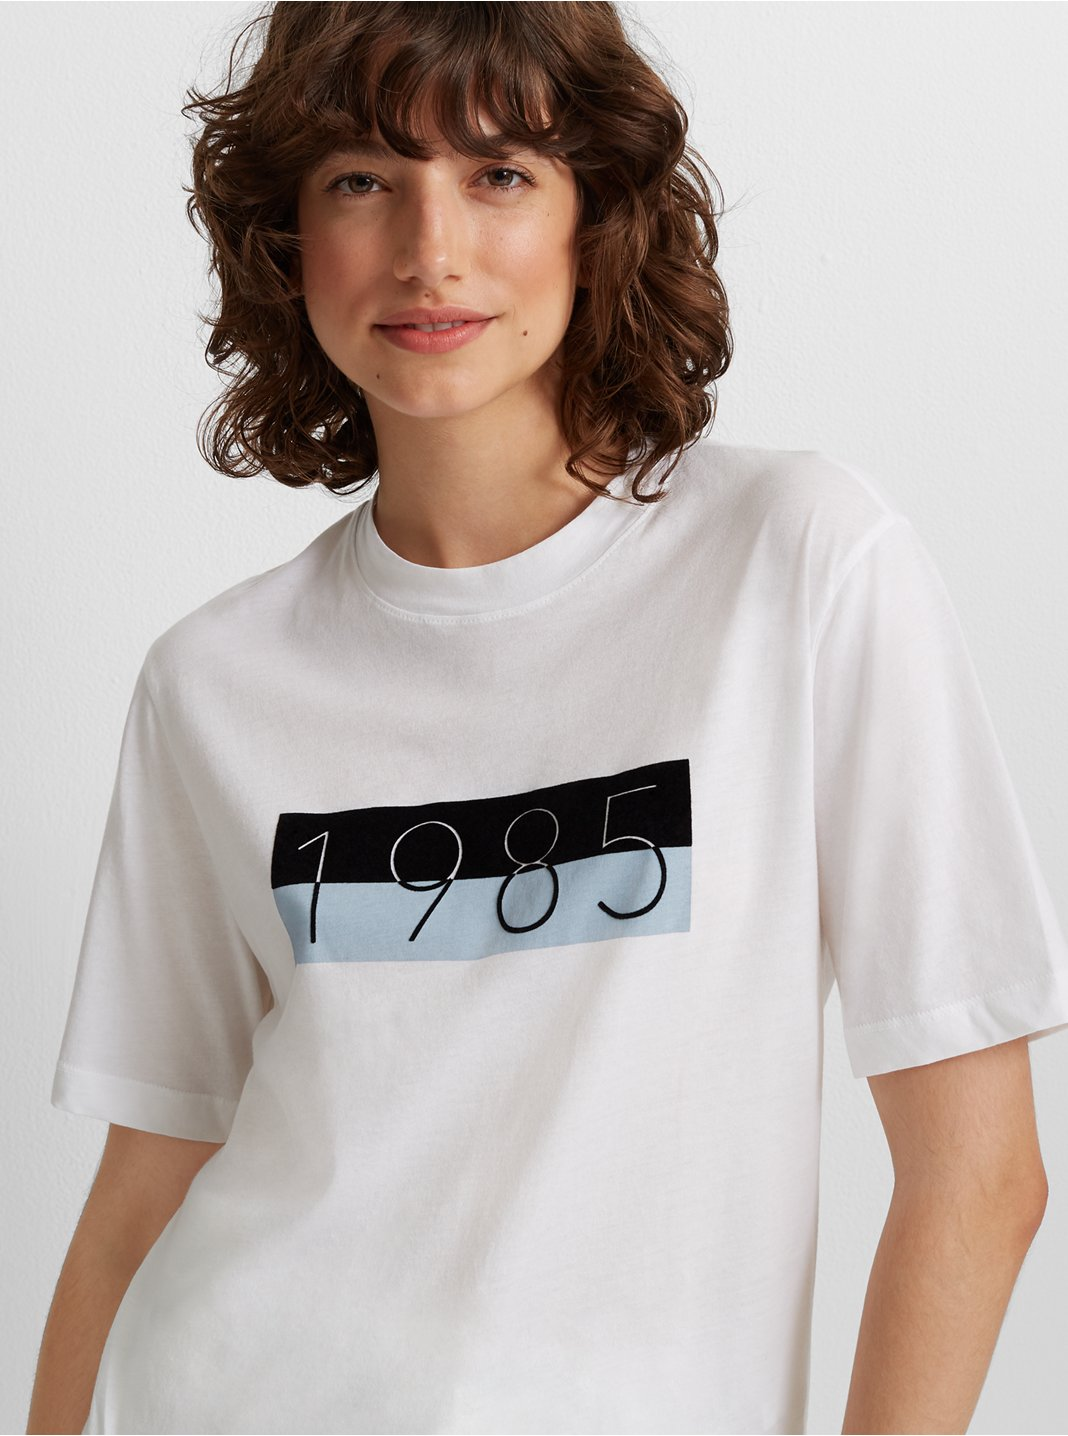 1985 Graphic Tee